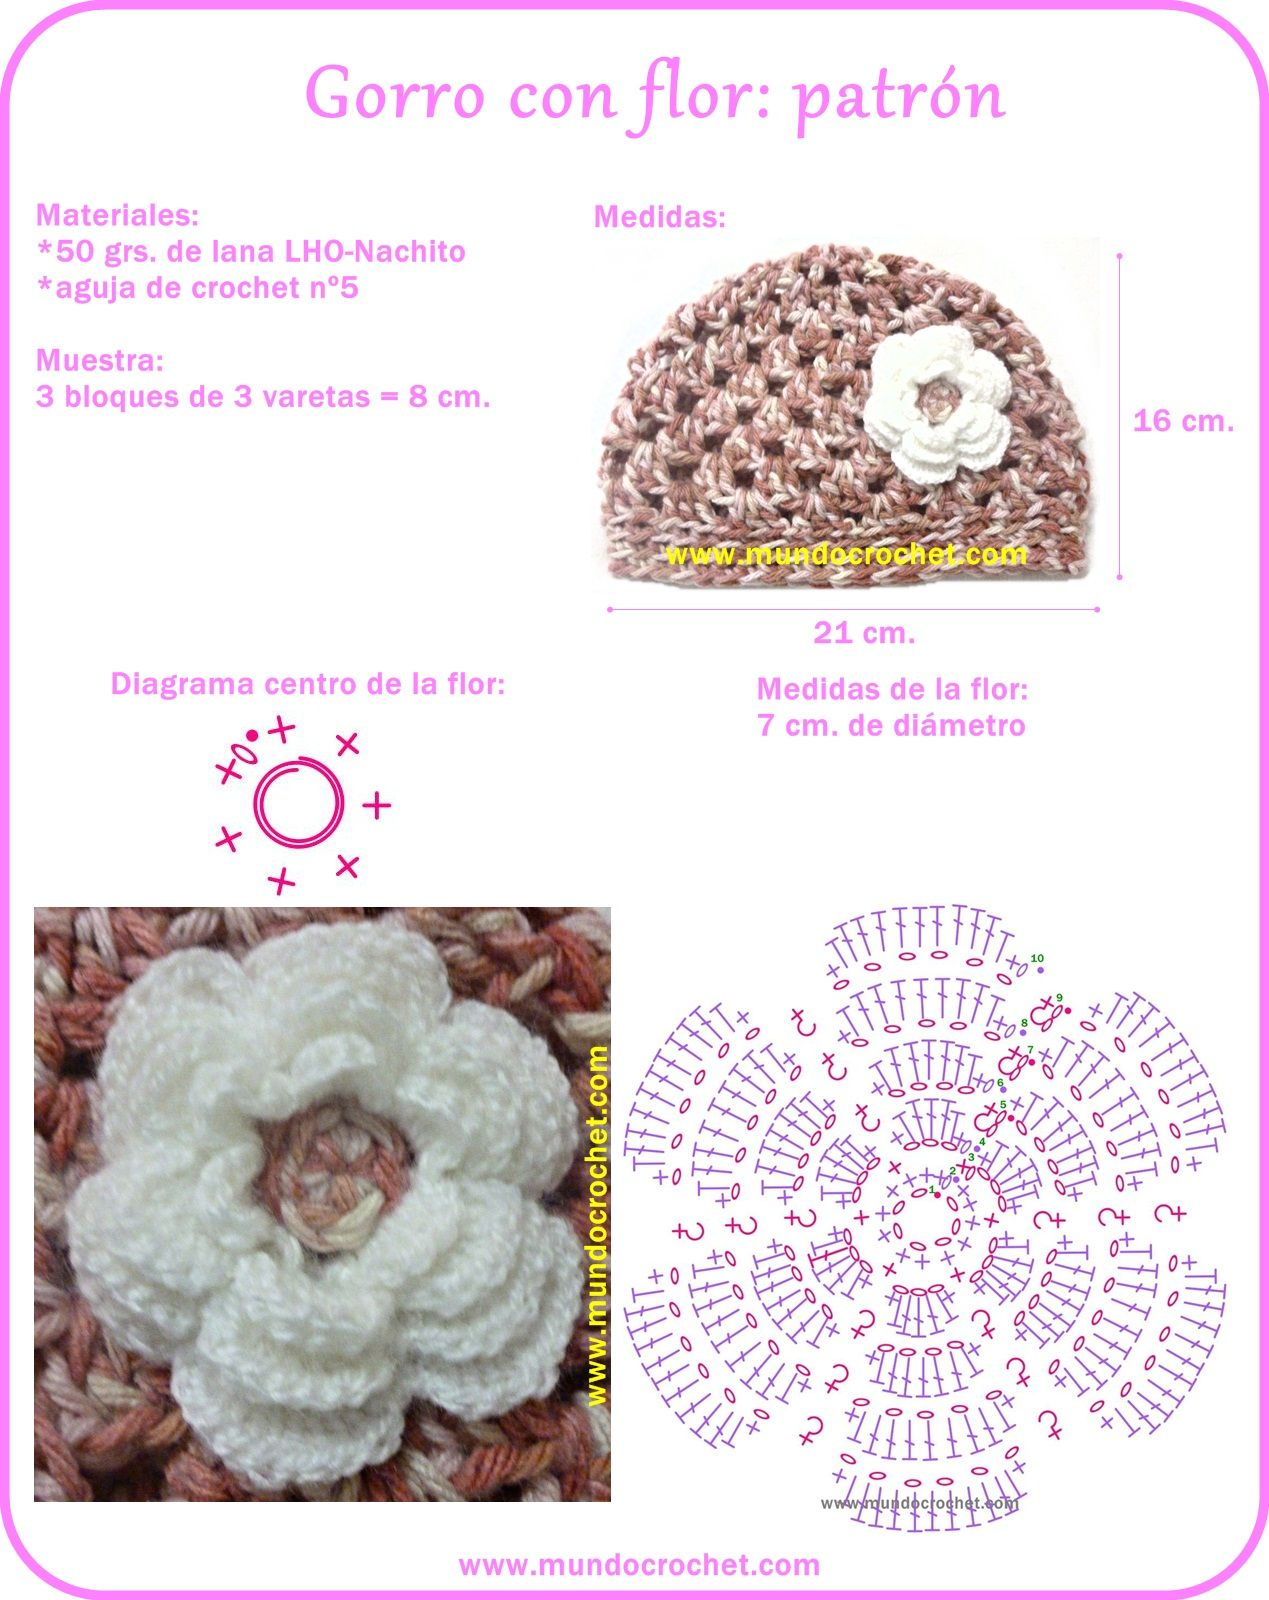 Gorro crochet rose flower crochet pattern | Crochet Flowers _ وردات ...